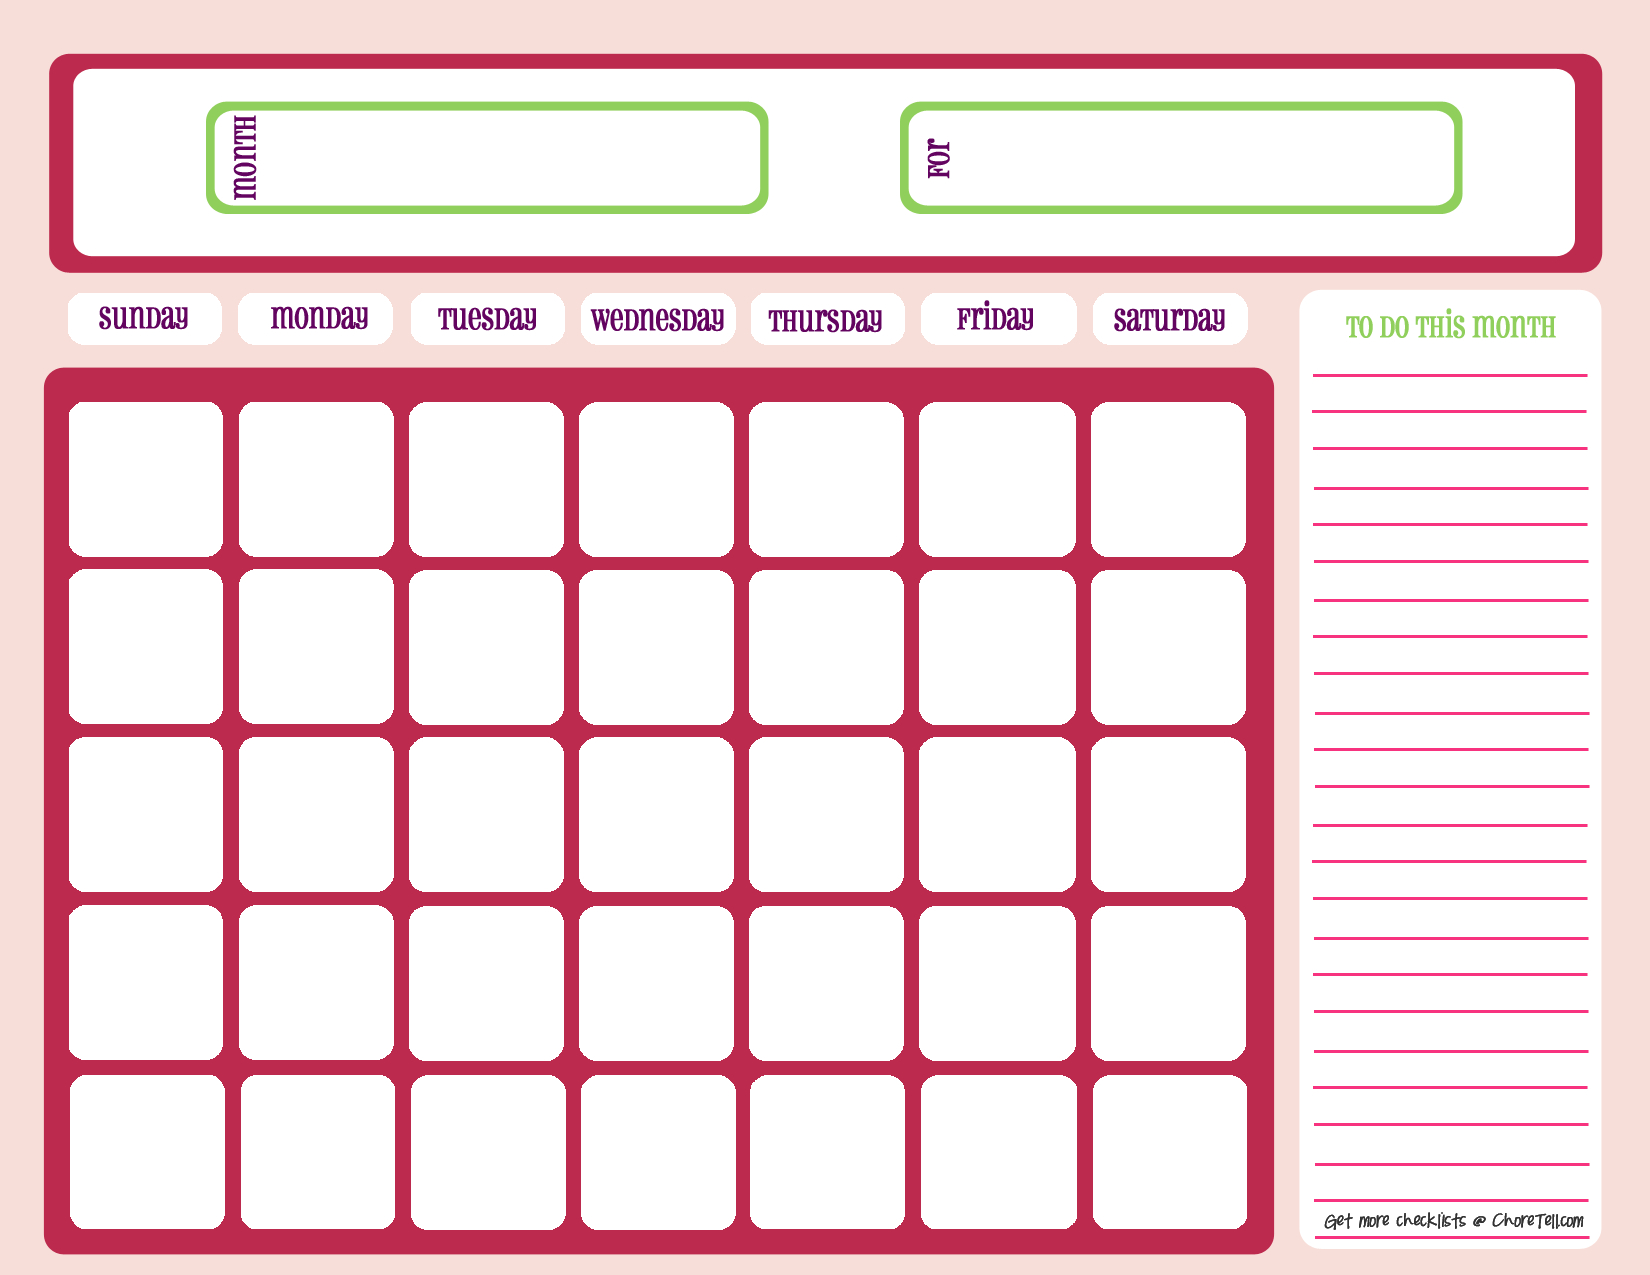 Blank Month Calendar - Pinks - Free Printable Downloads From Choretell